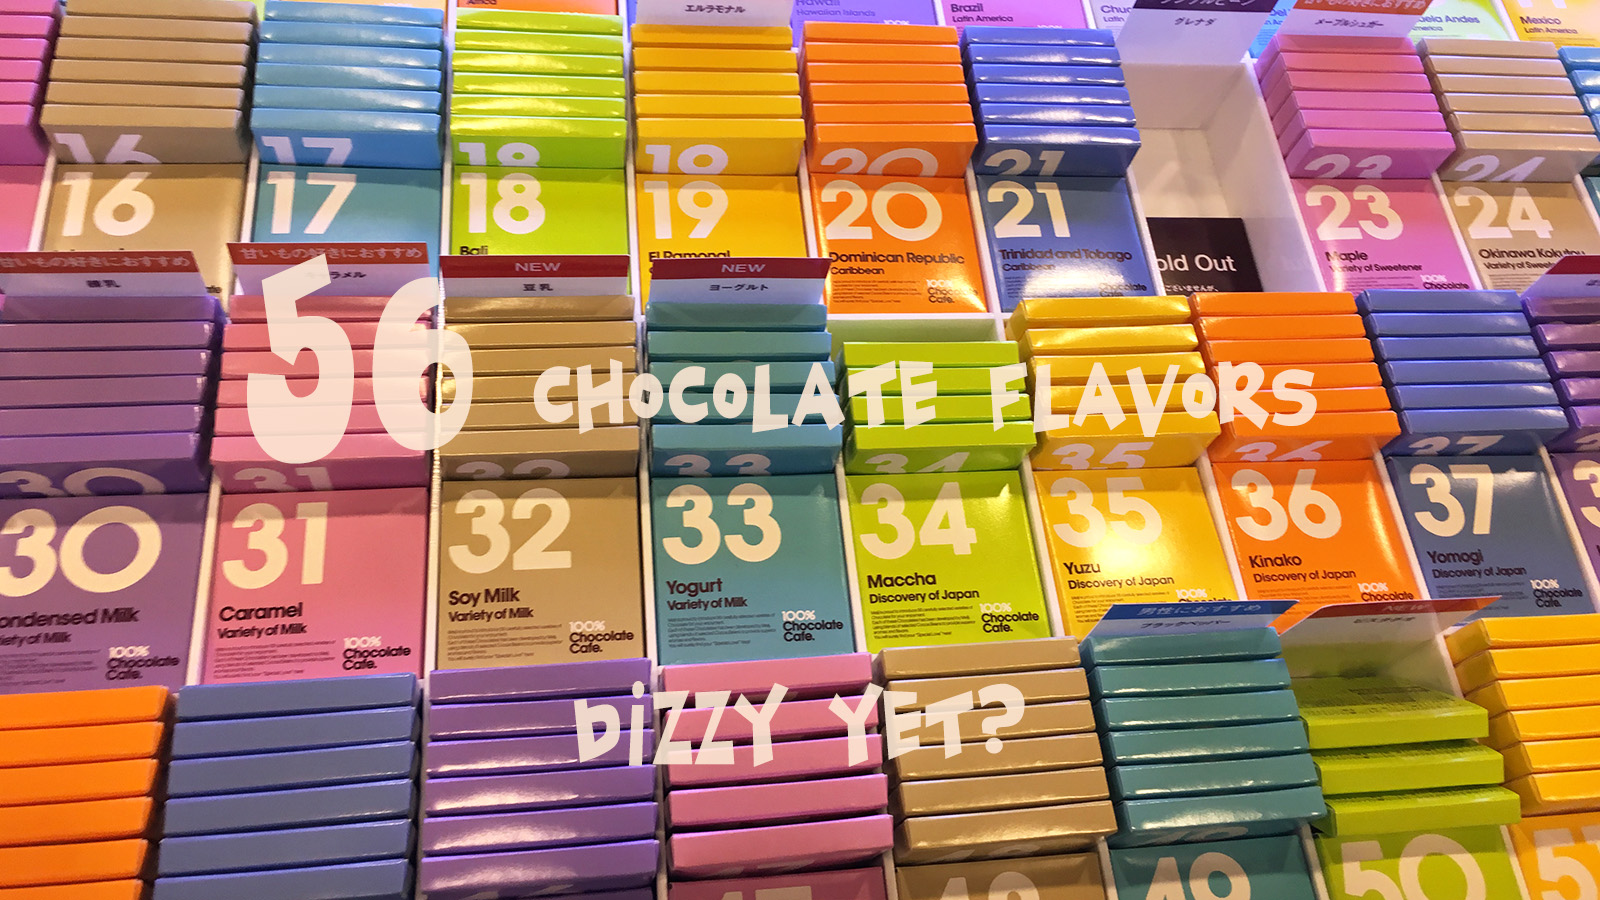 Cheese, soy milk and black pepper are among the whopping 56 chocolate flavors from Meiji's contemporary chocolate boutique, 100% Chocolate Cafe. It's hard to tell if consumers buy the products for the flavors or the colorful and modernist package design. The price ranges from 200 yen to 300 yen per piece ($1.77-$2.66) (Shen Lu/MEDILL)